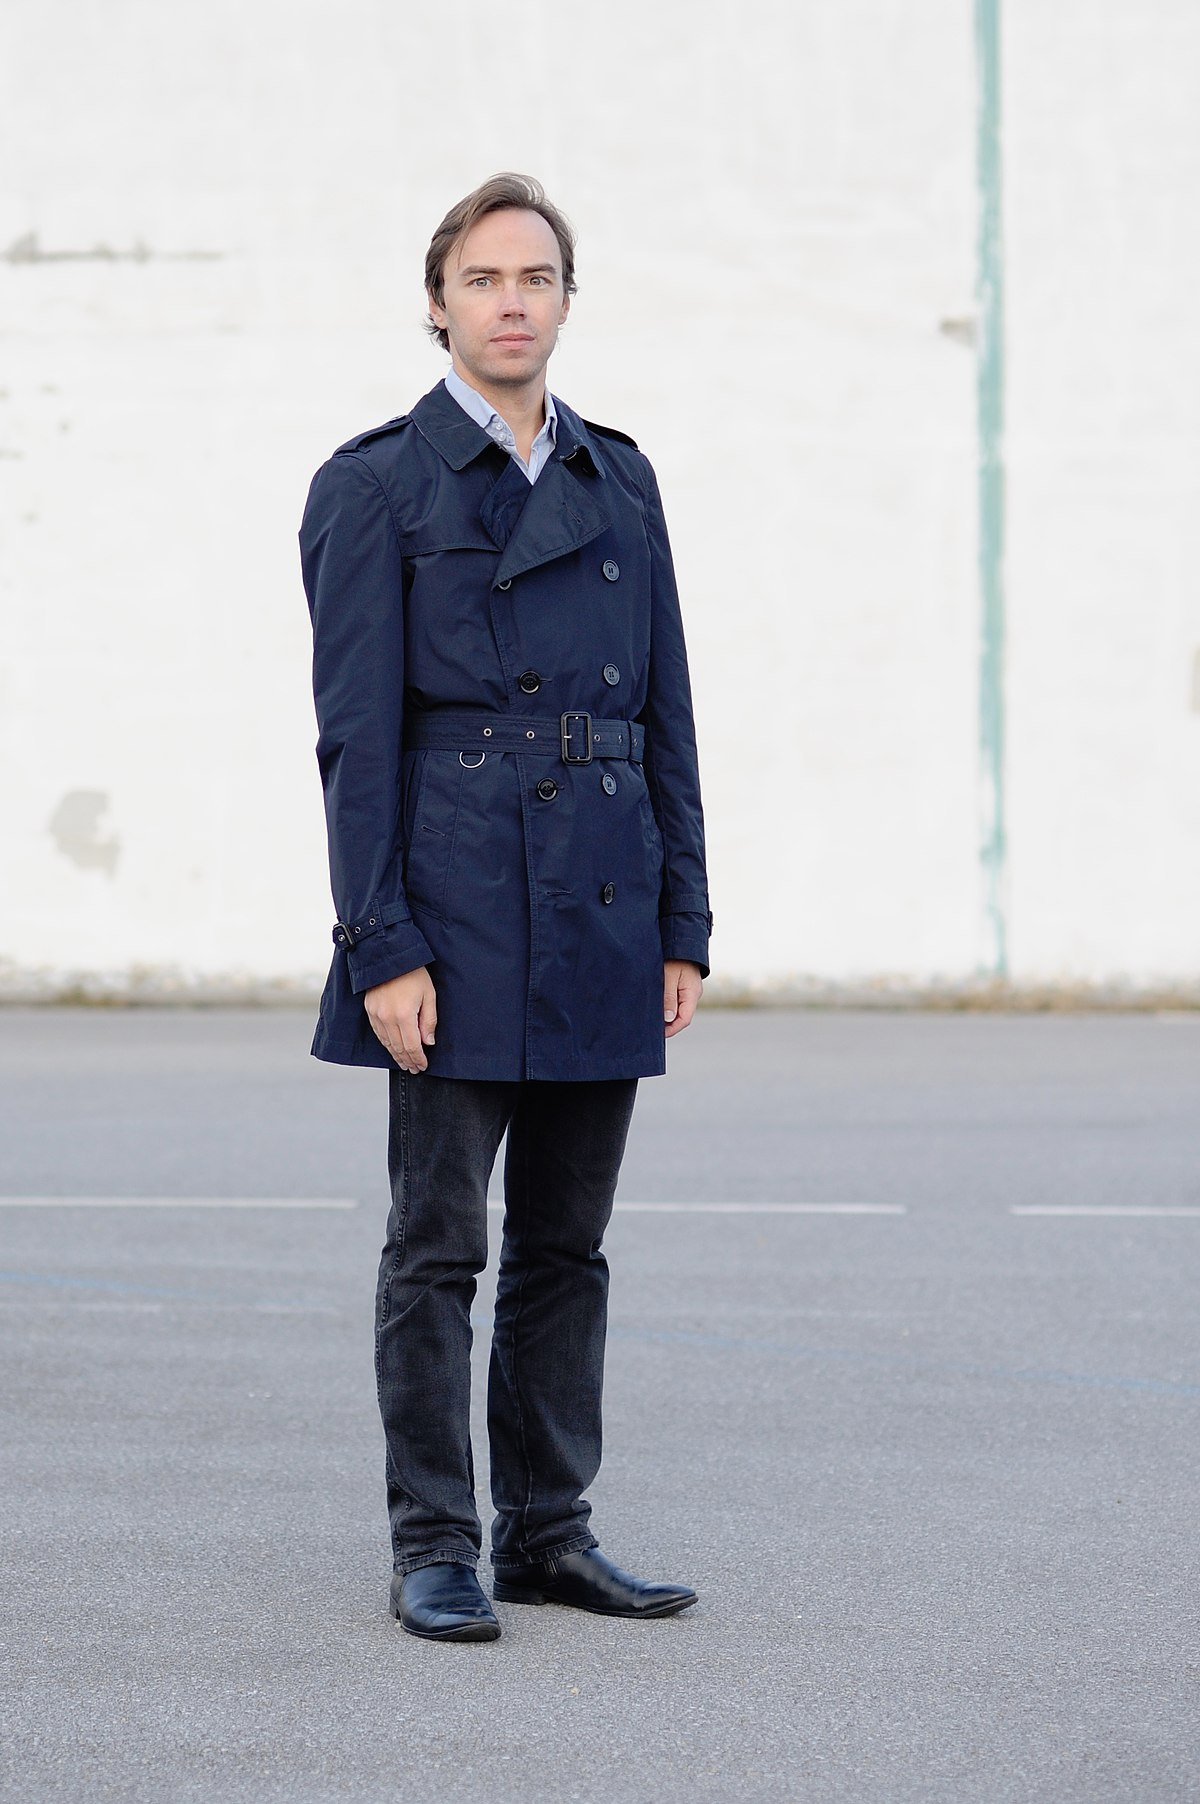 03b79dff0 Trench coat - Wikipedia